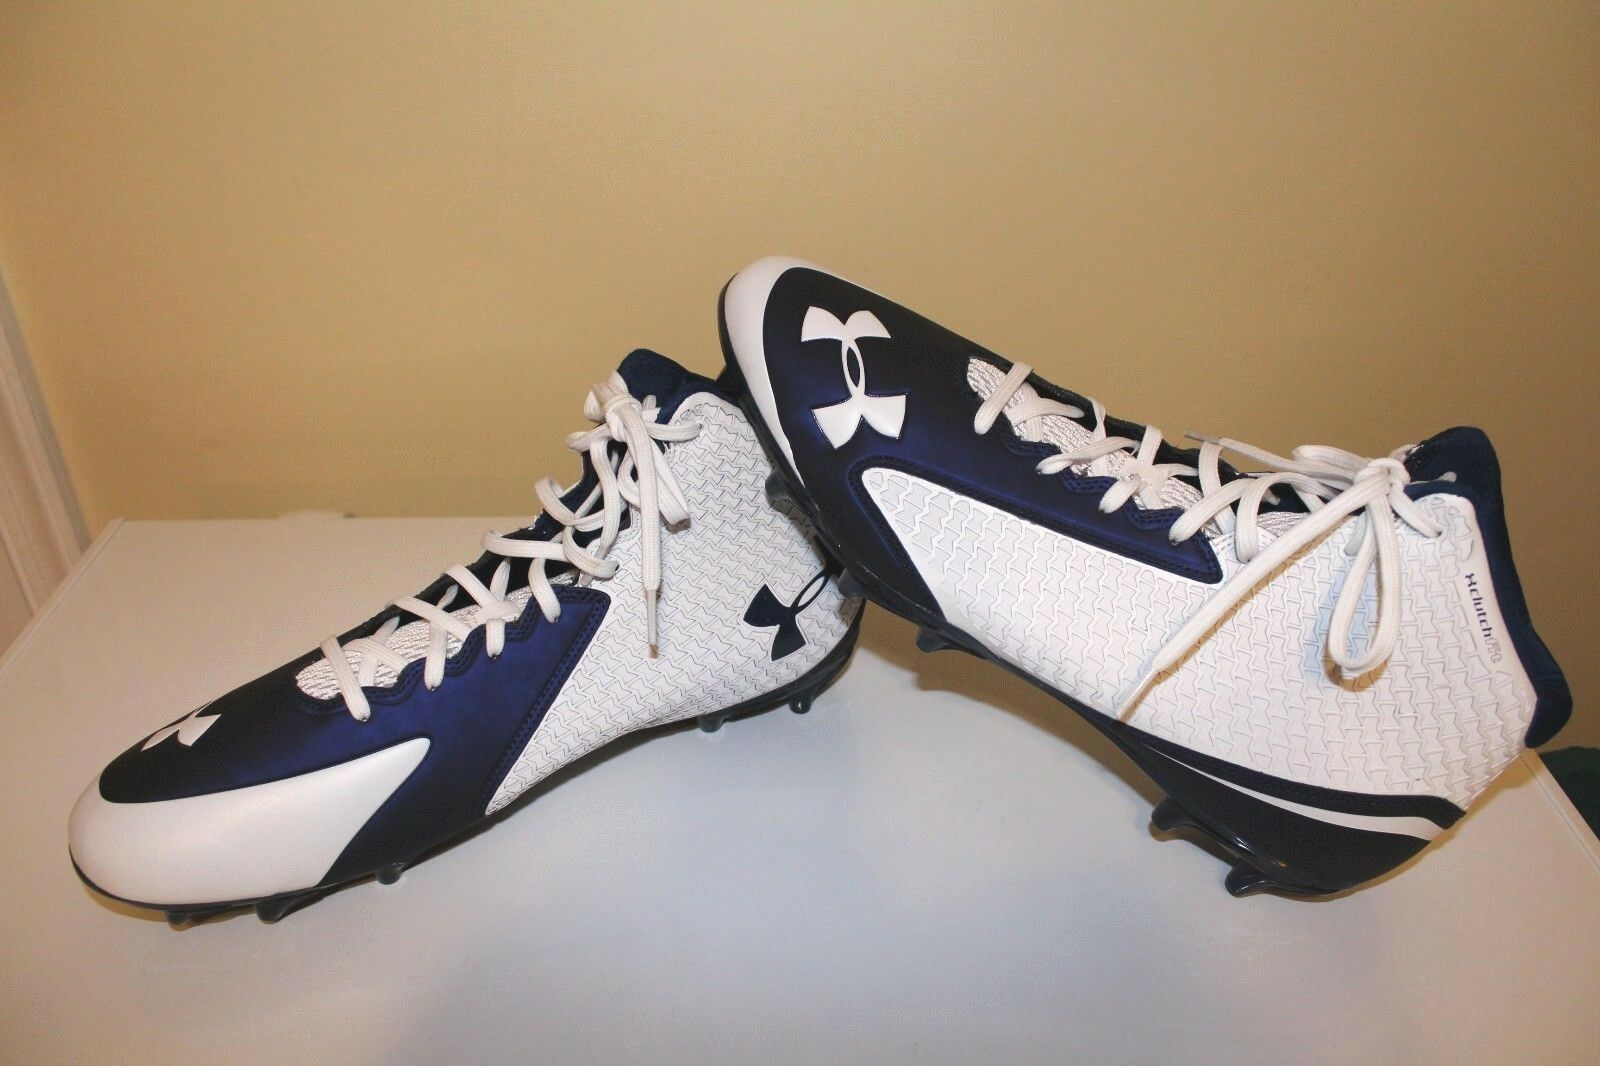 NWOT UNDER ARMOUR Uomo NITRO MID D FOOTBALL CLUTCH FIT CLEATS bianca  blu 15  90